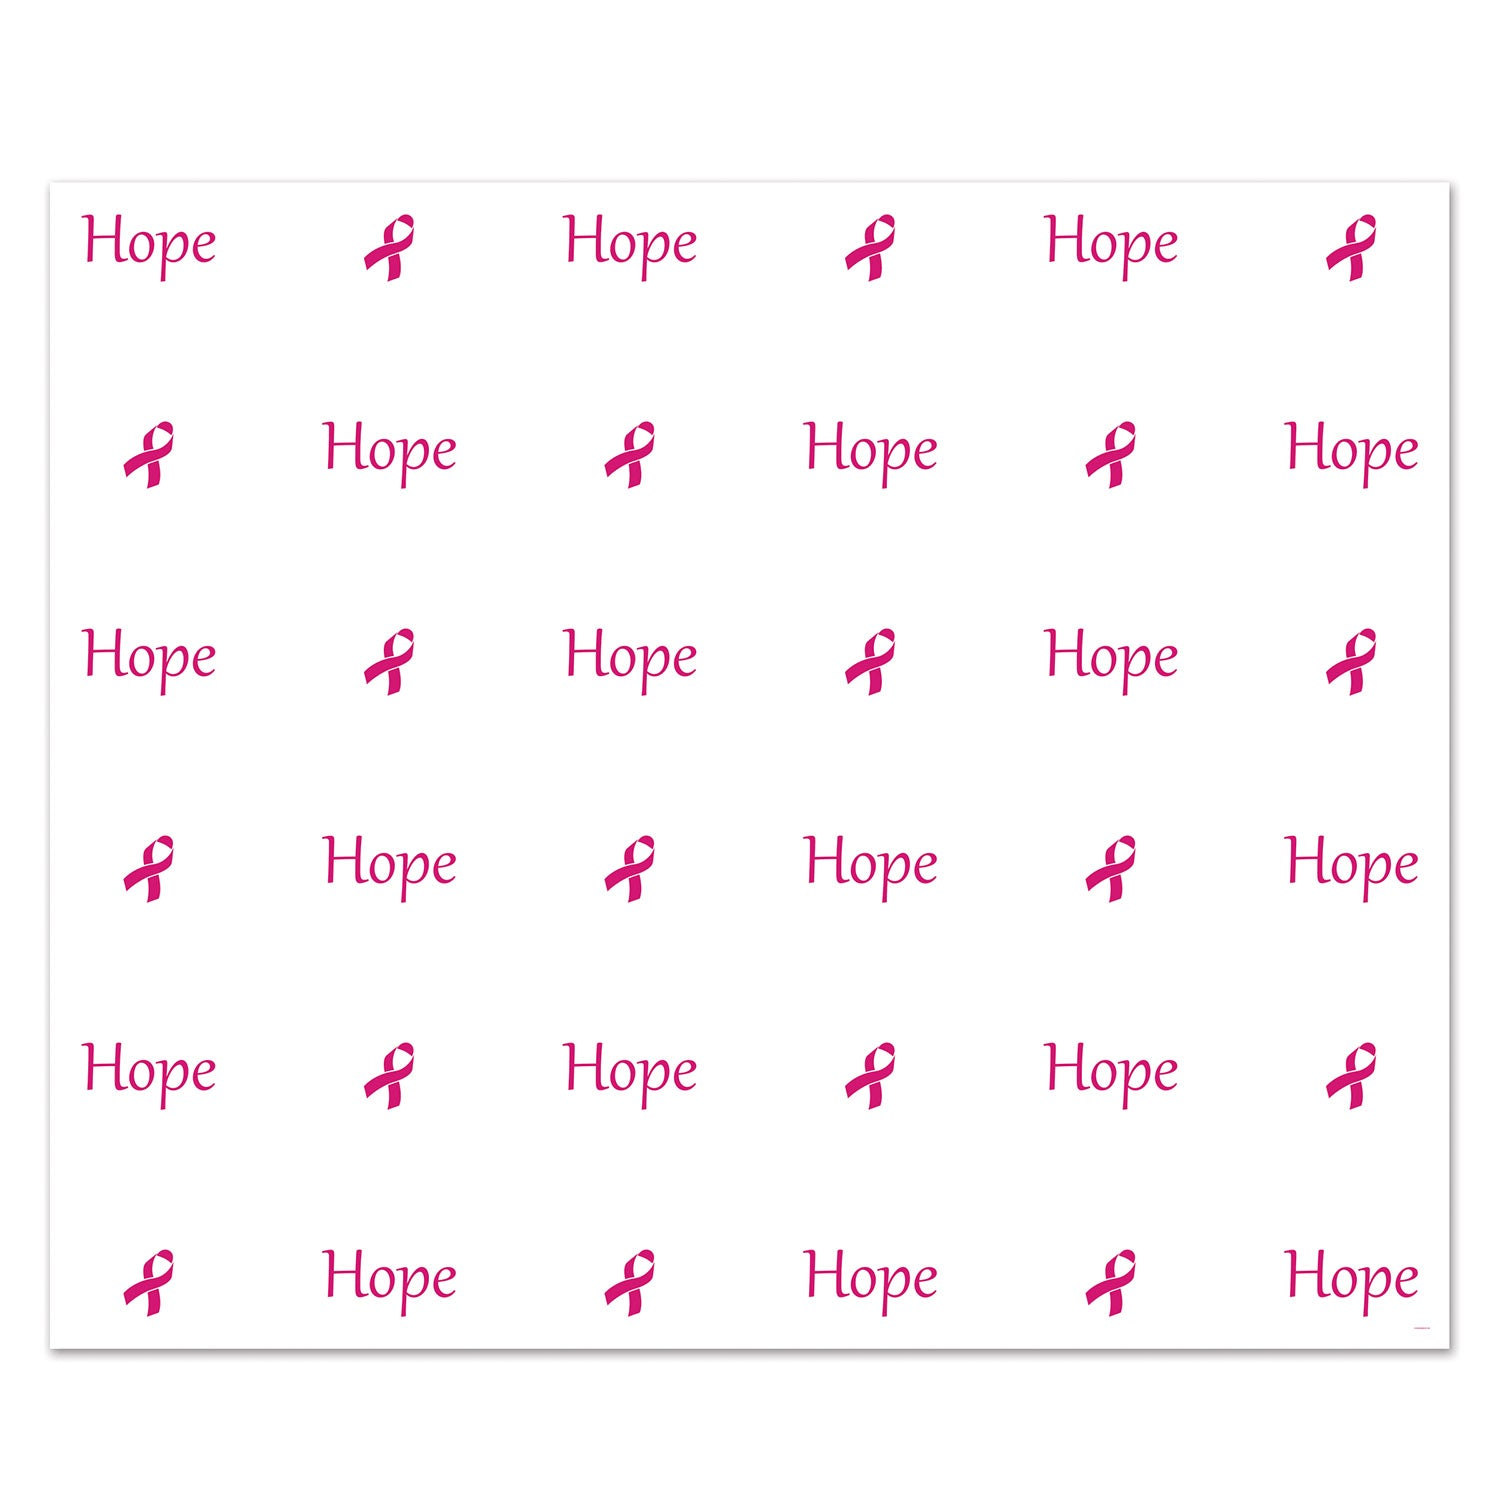 Hope Insta-Mural Photo Op by Beistle - Pink Ribbon Theme Decorations